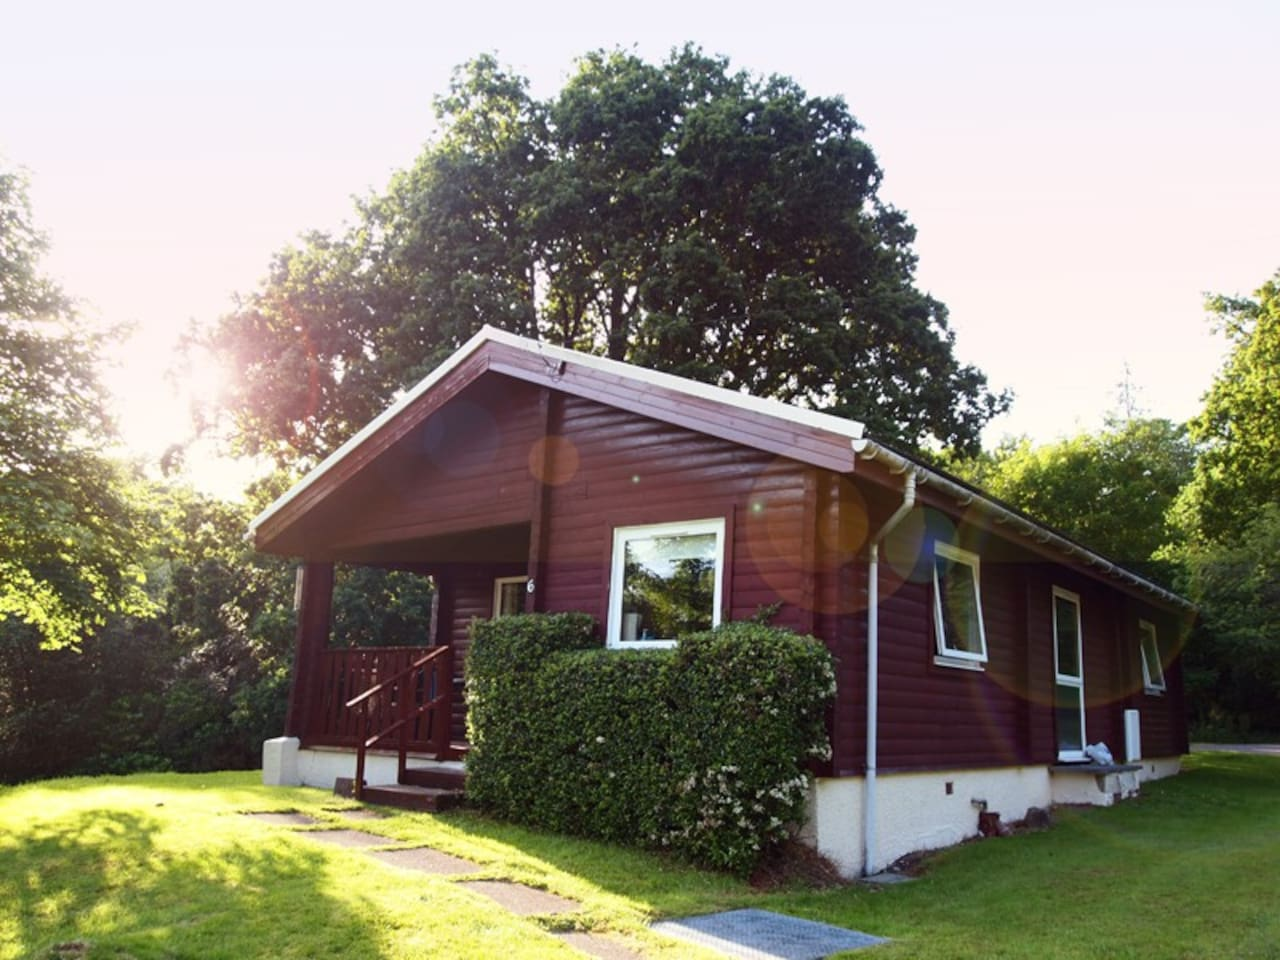 Come and stay in your very own cosy log cabin!